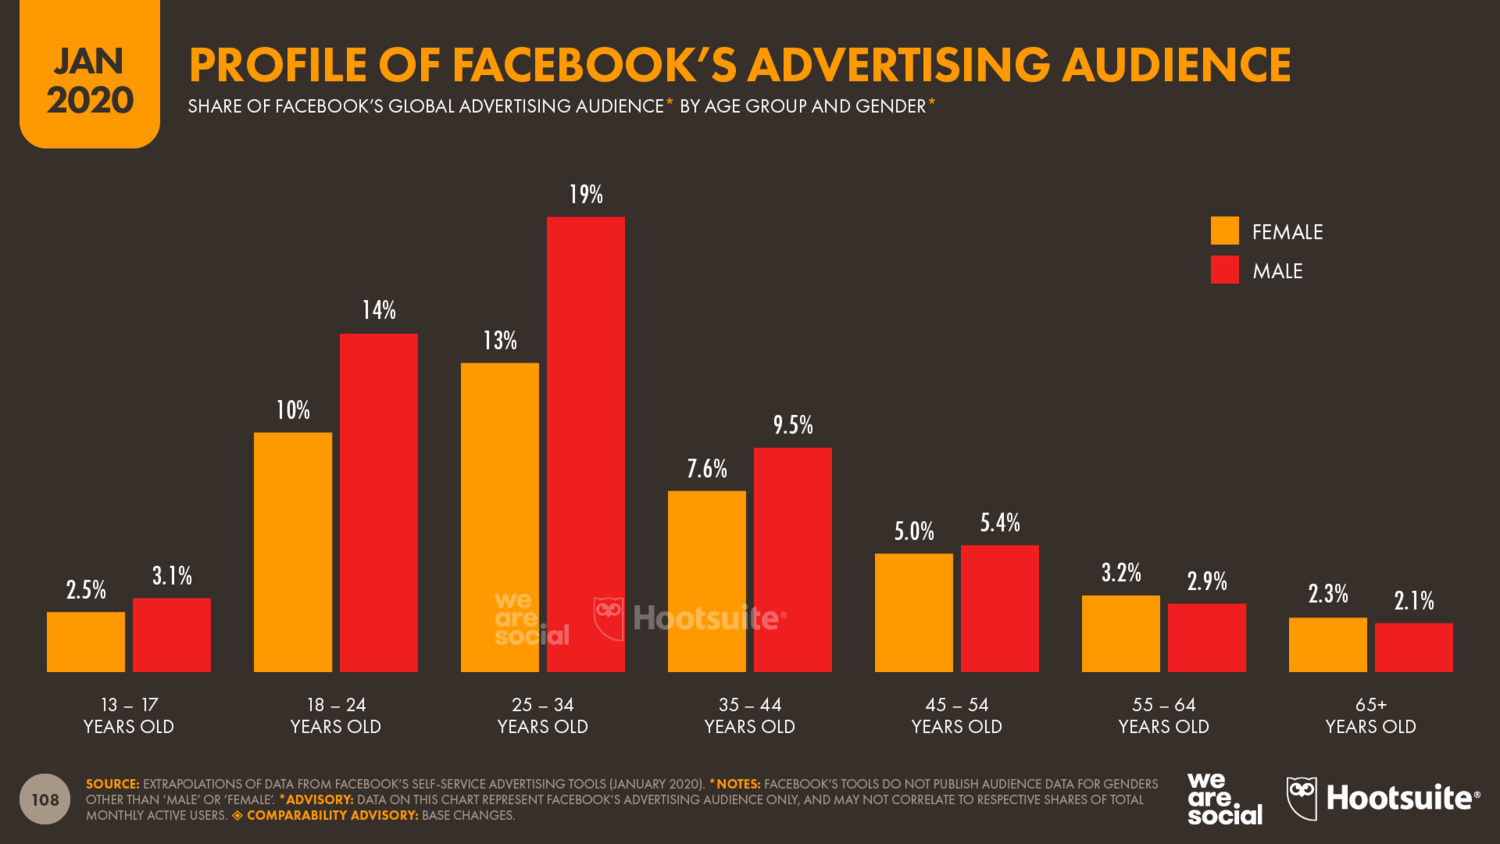 Profile+of+Facebook's+Advertising+Audience+by+Age+Group+and+Gender+January+2020+DataReportal